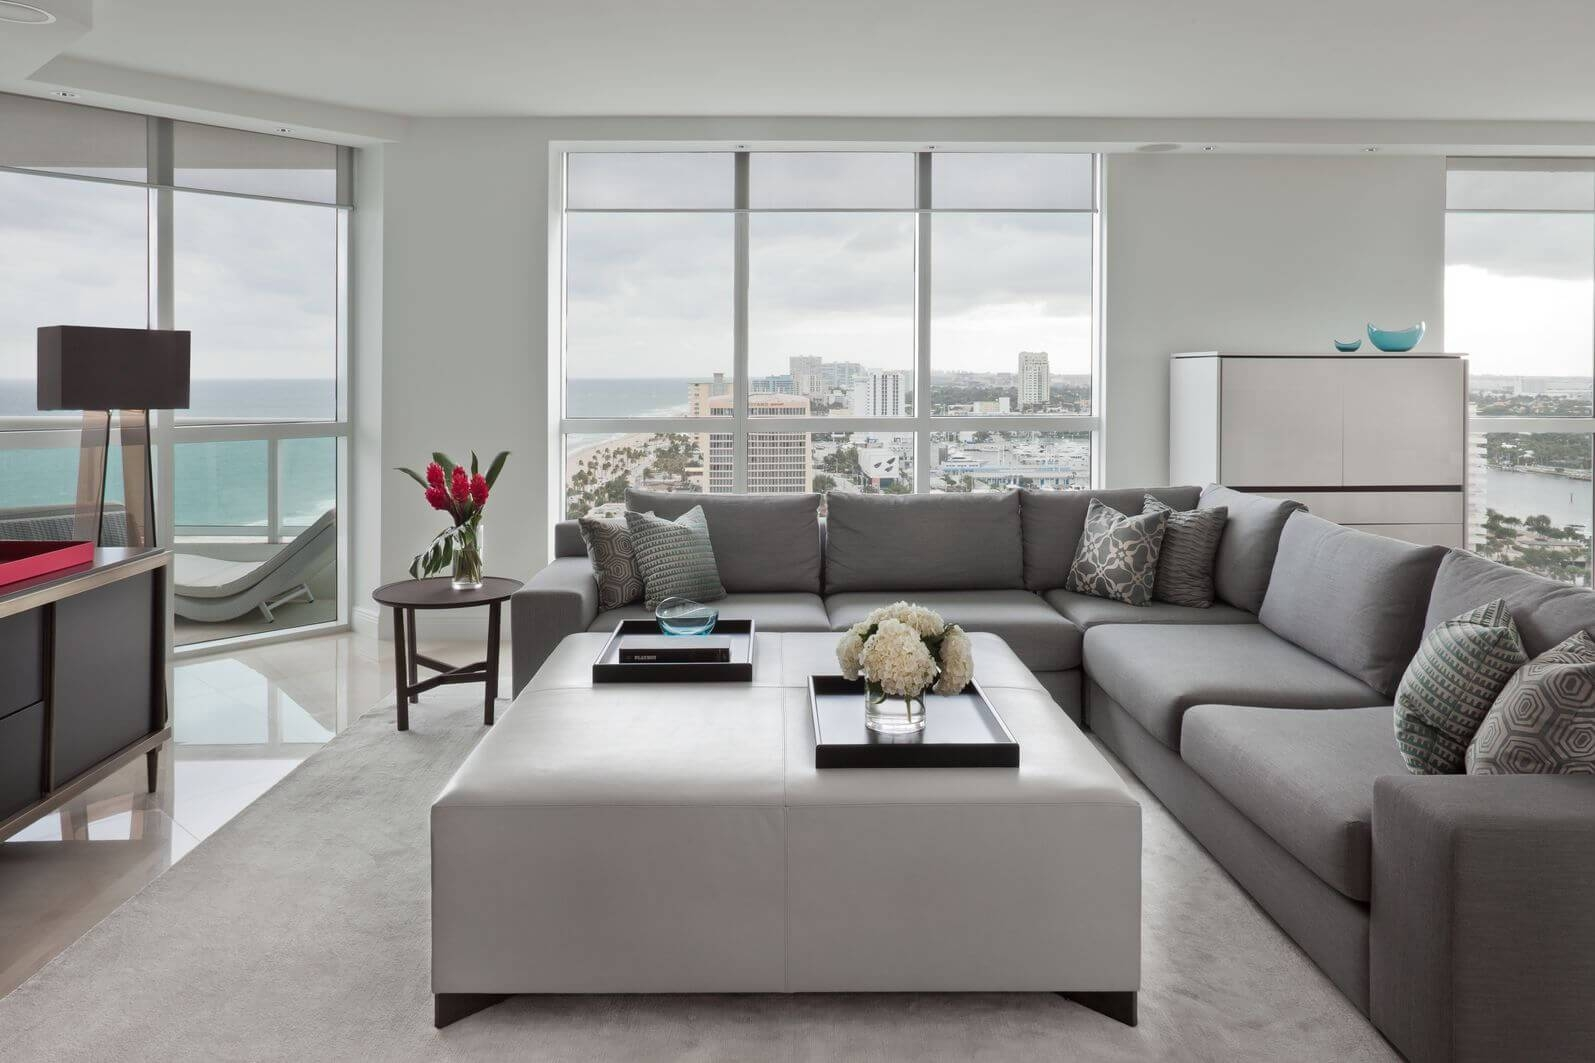 Contemporary Square White Leather Large Ottoman Coffee Table Grey Inside Sectional Sofa With Large Ottoman (View 3 of 30)